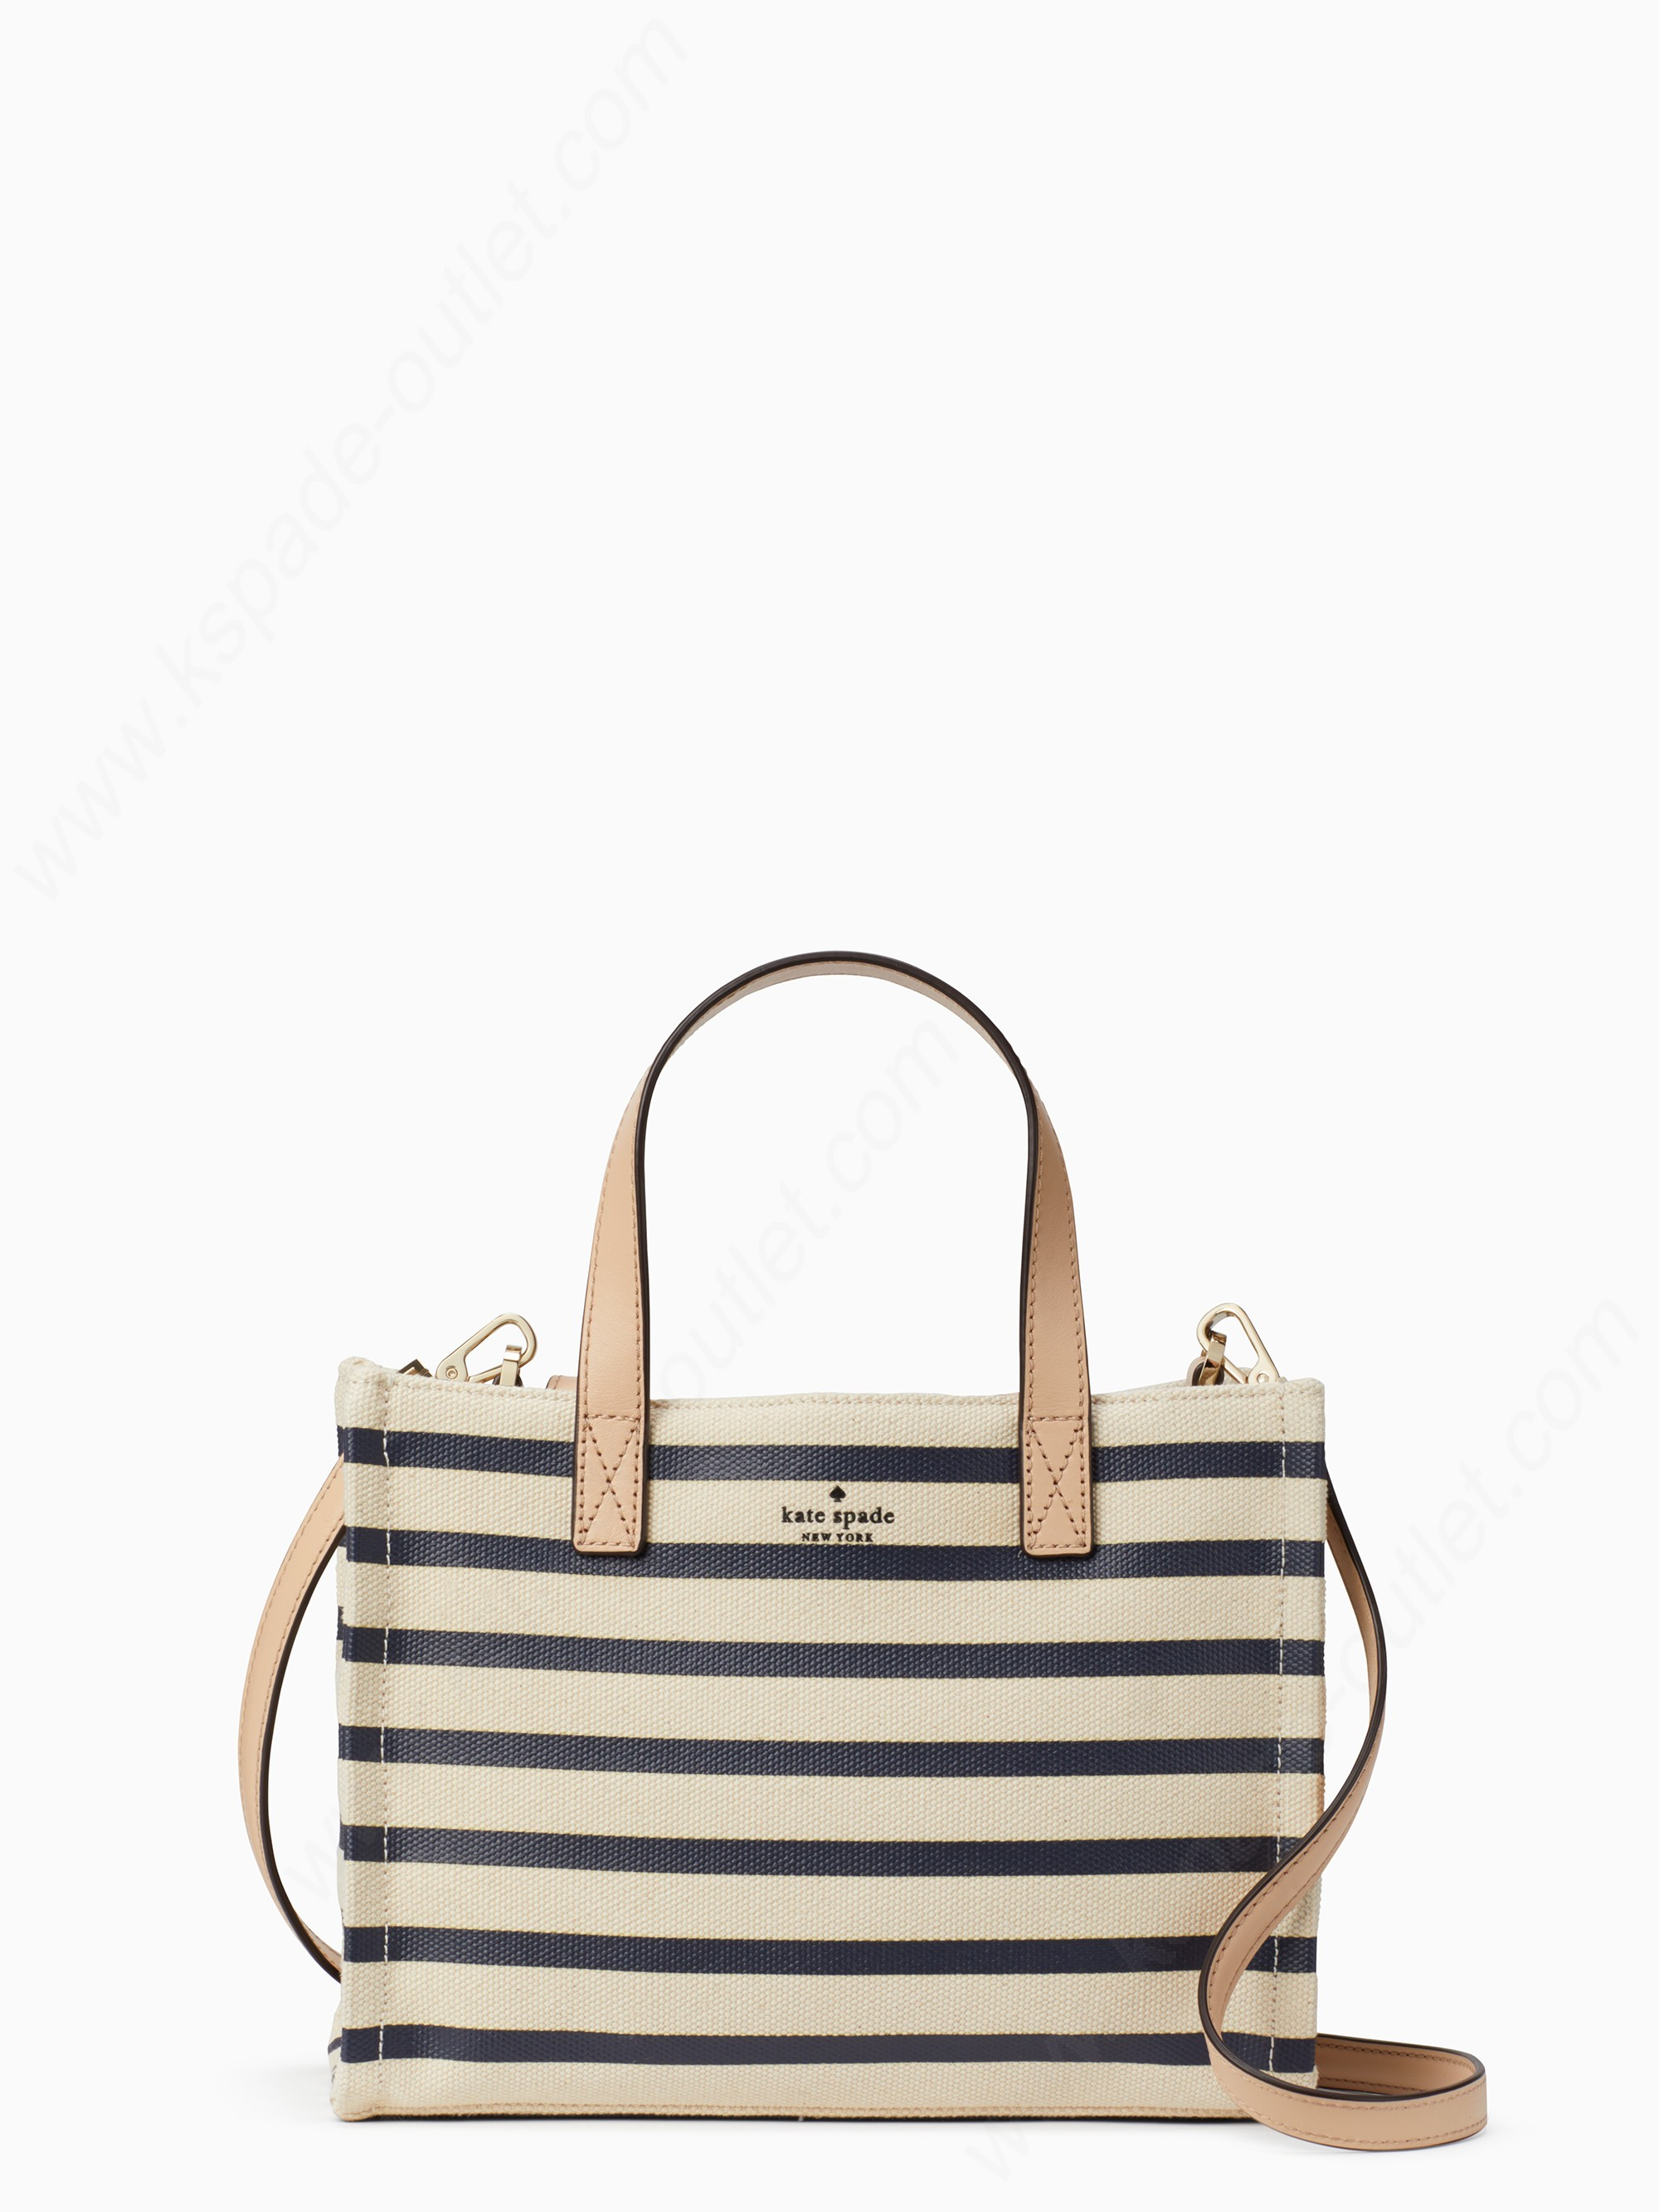 Kate Spade Womens Bag Washington Square Sam - Kate Spade Womens Bag Washington Square Sam